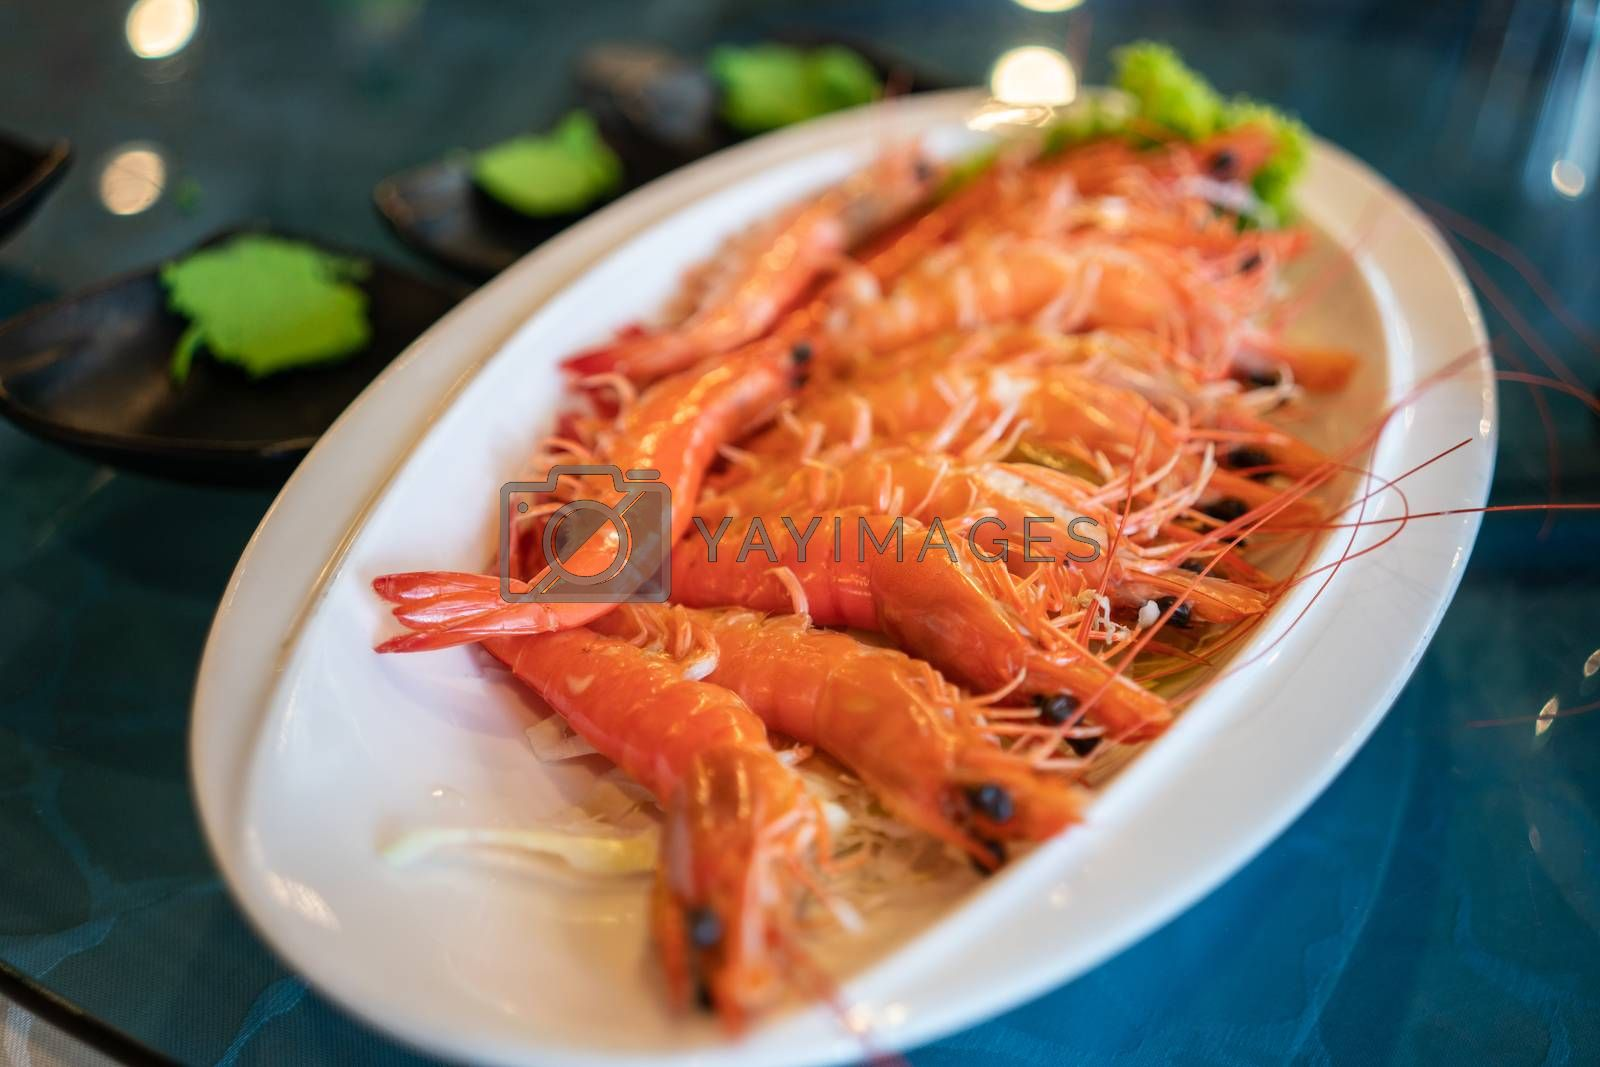 Royalty free image of A Plate of Cooked Prawn in a Restaurant by kstphotography